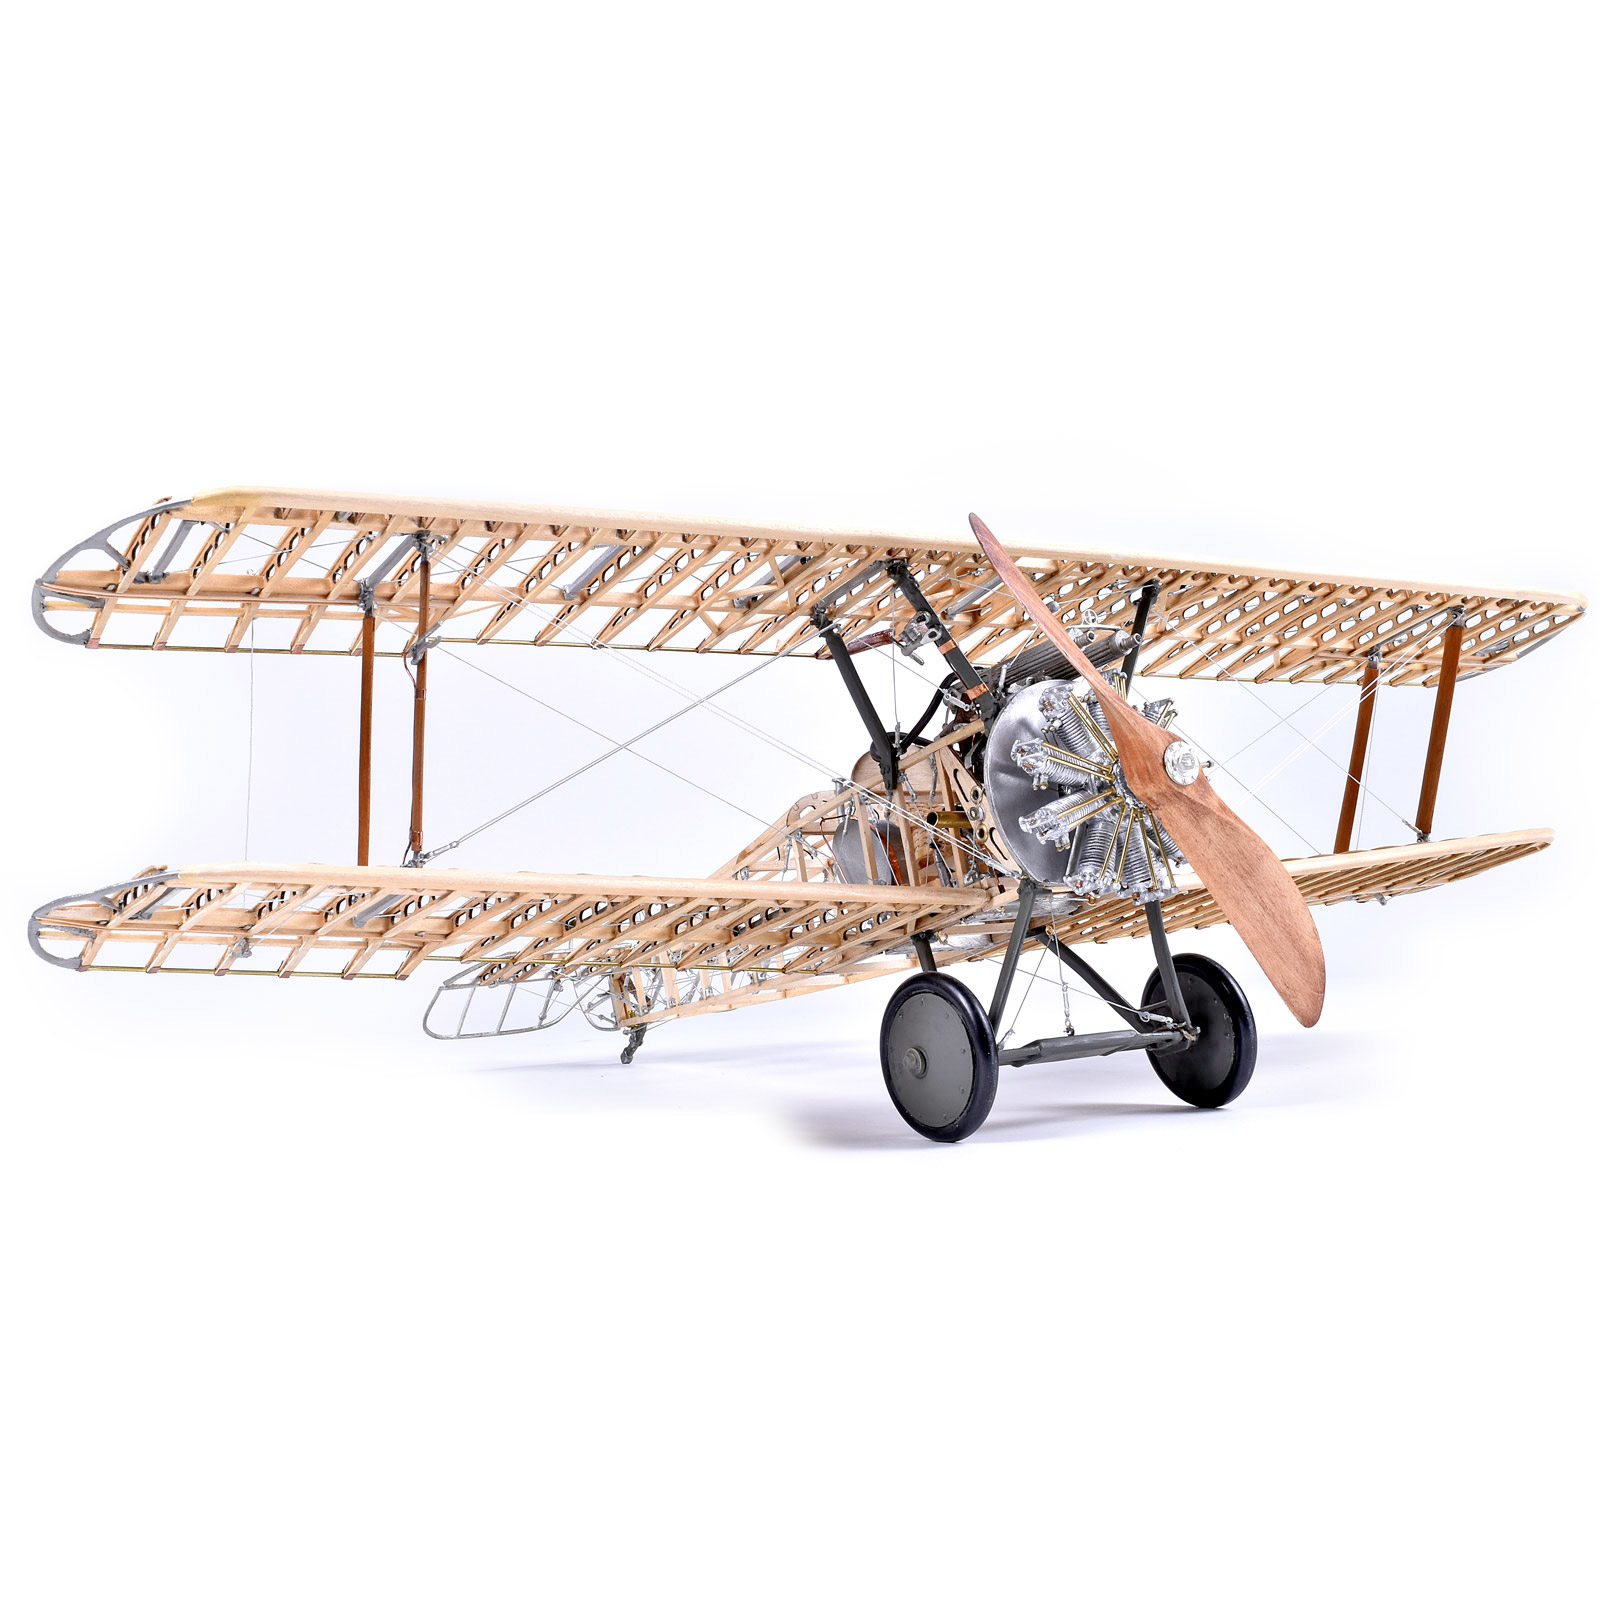 Model Airways Sopwith Camel